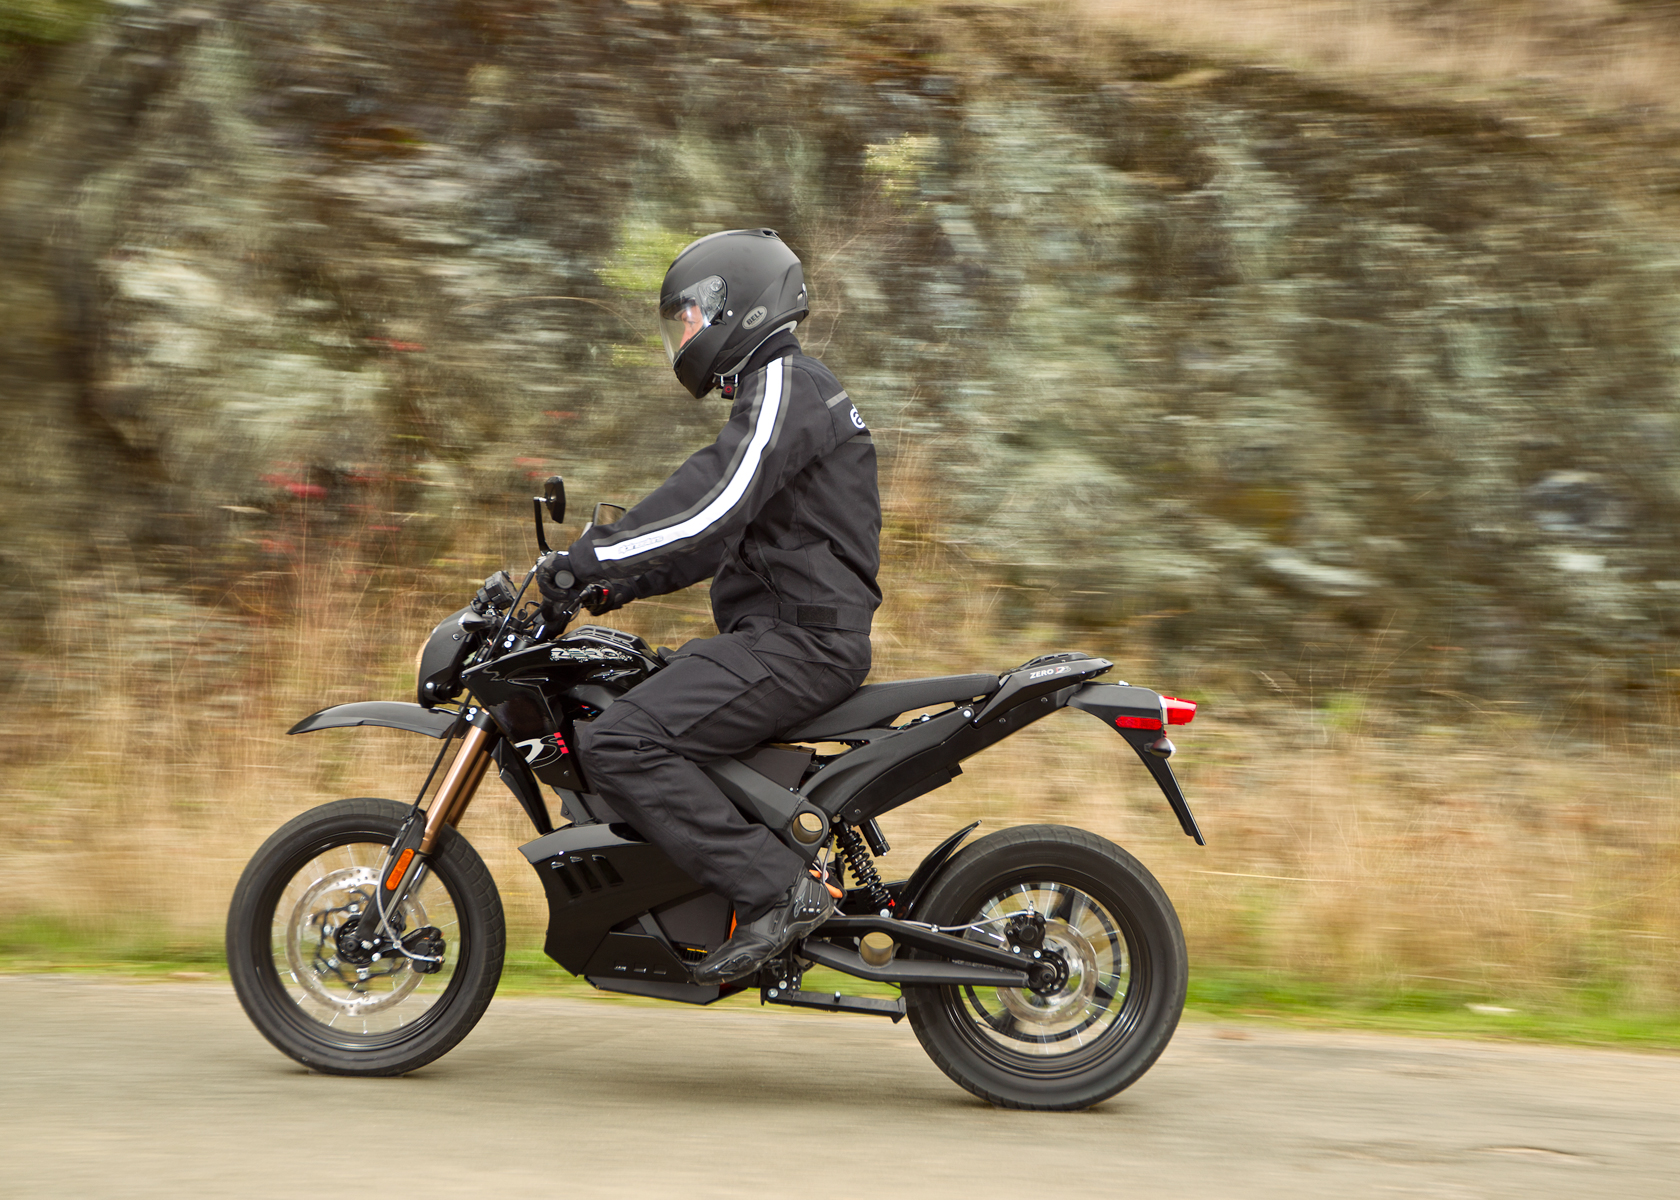 2012 Zero DS Electric Motorcycle: Cruising